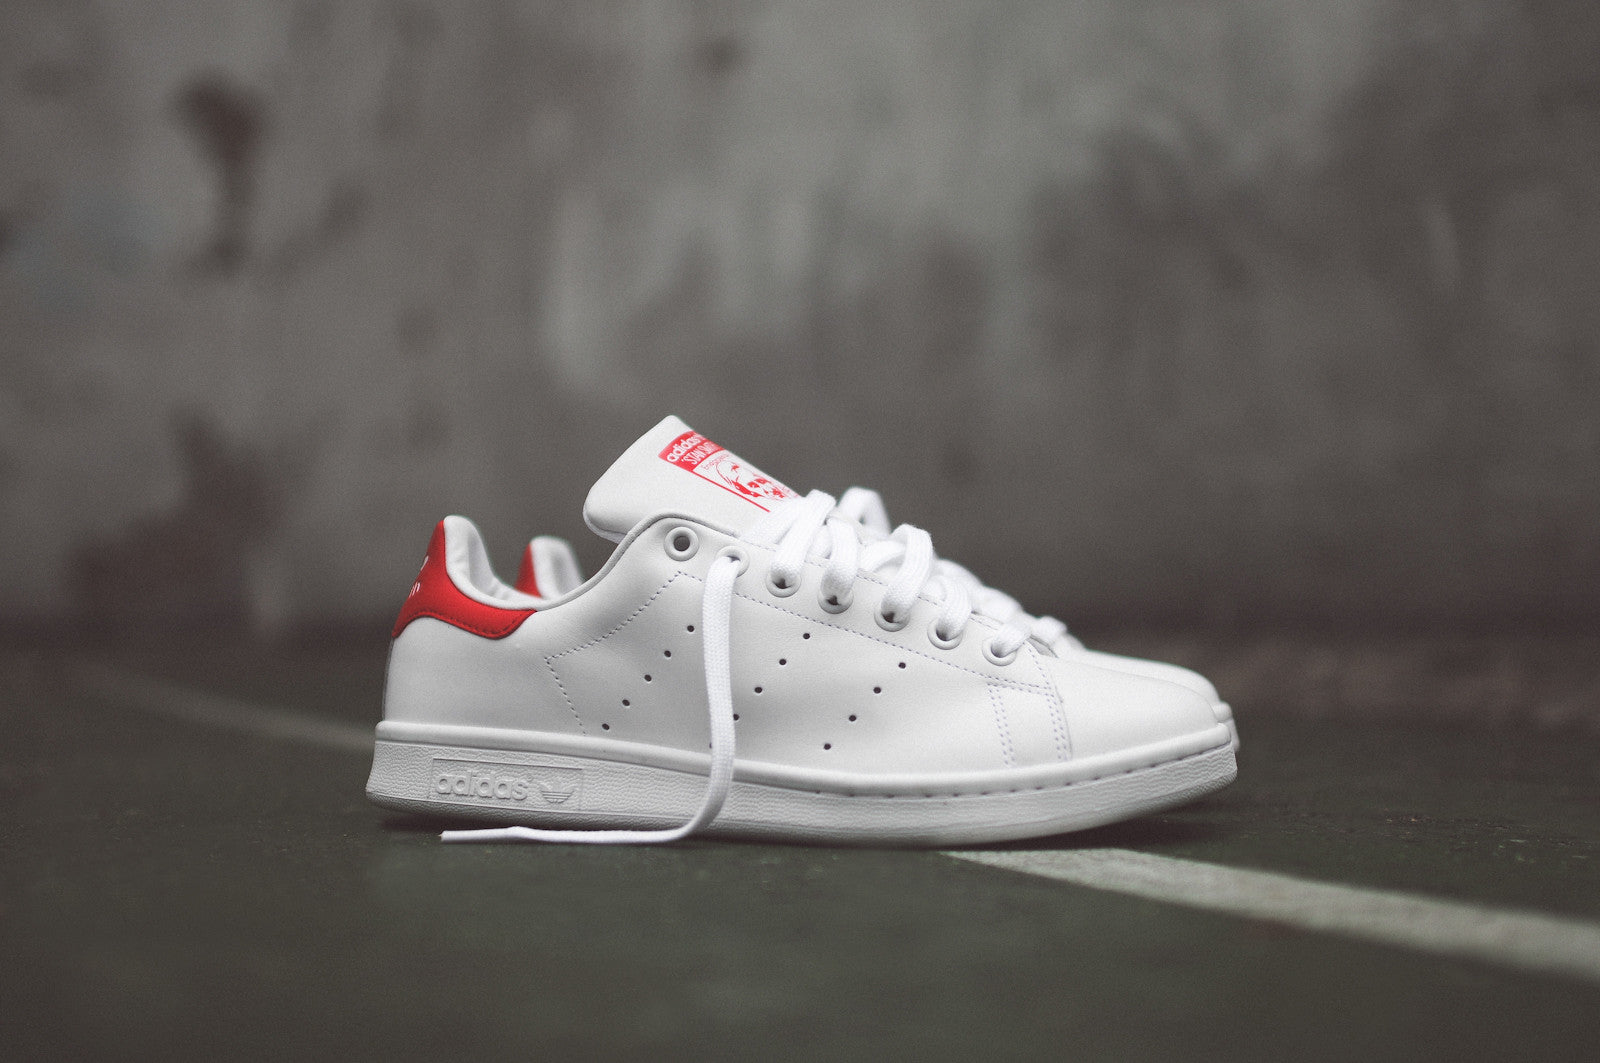 Adidas Stan Smith White Black Red shoes